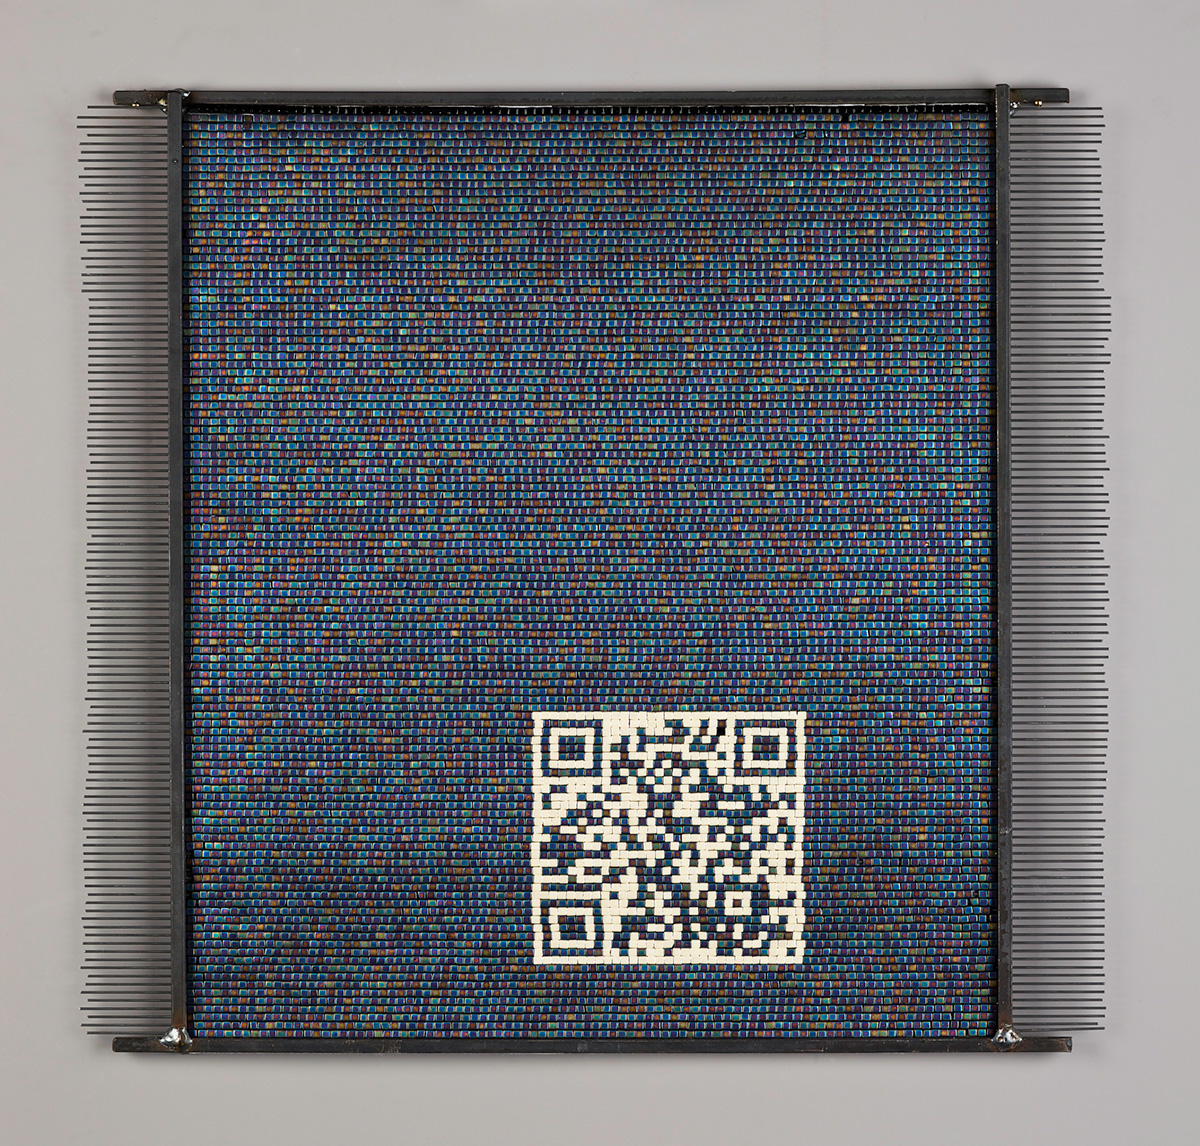 Autoimmune Response: South, weaving with QR code. Will R. Wilson (Diné [Navajo], b. 1969), Auto Immune Response: Weaving the Sacred Mountains, 2011–12. Funds from Polly and Mark Addison and Native Arts acquisition fund, 2013.4.1–4 ©Will R. Wilson